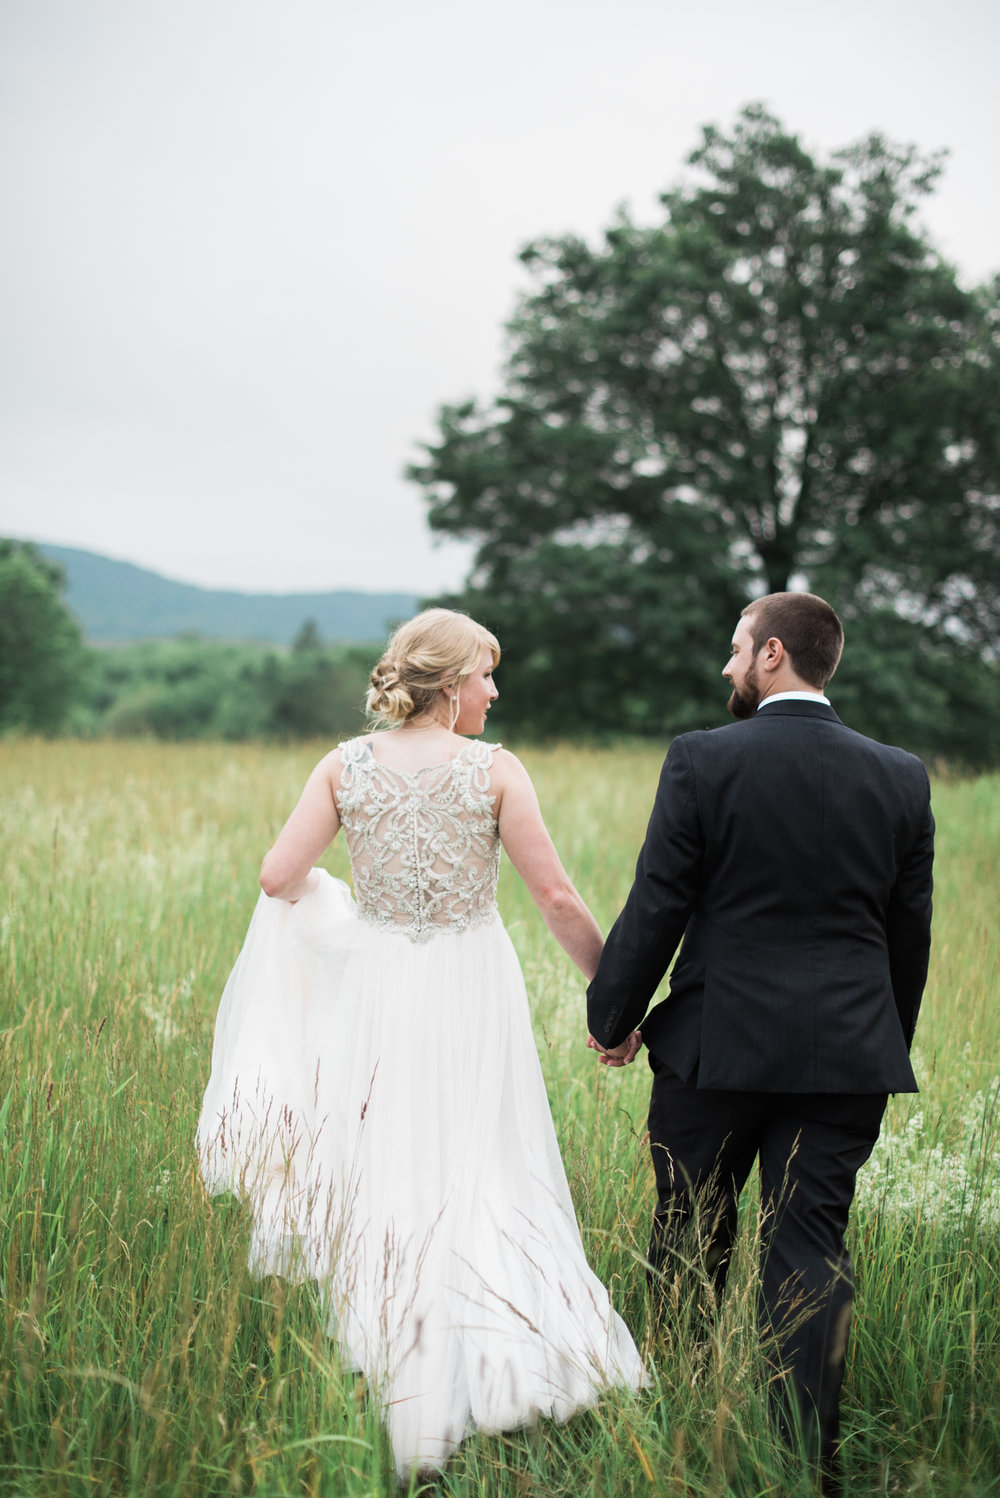 Rustic wedding venues in Massachusetts